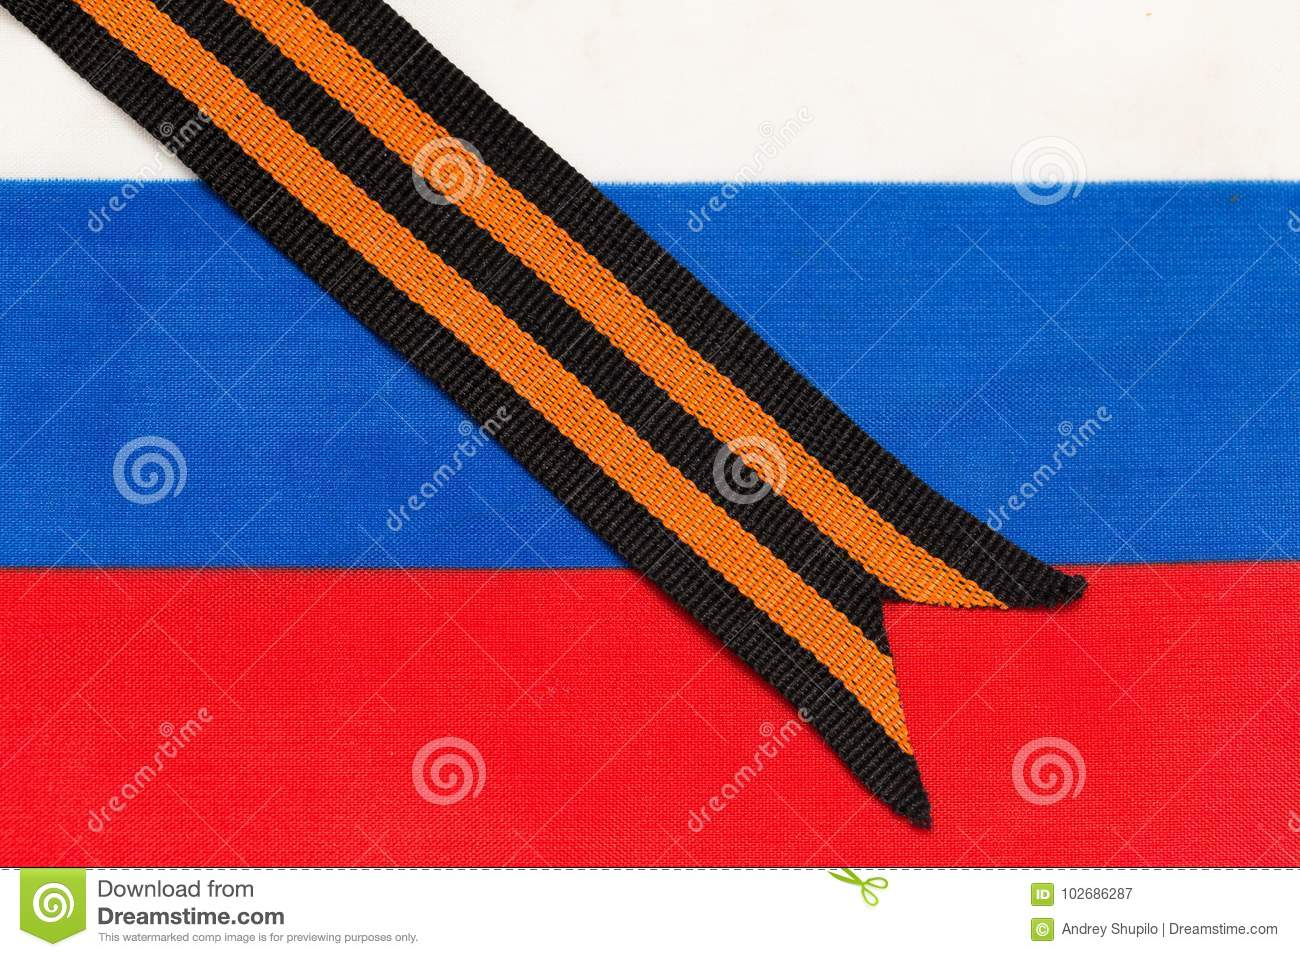 Long history of St. George ribbon and Russian glory